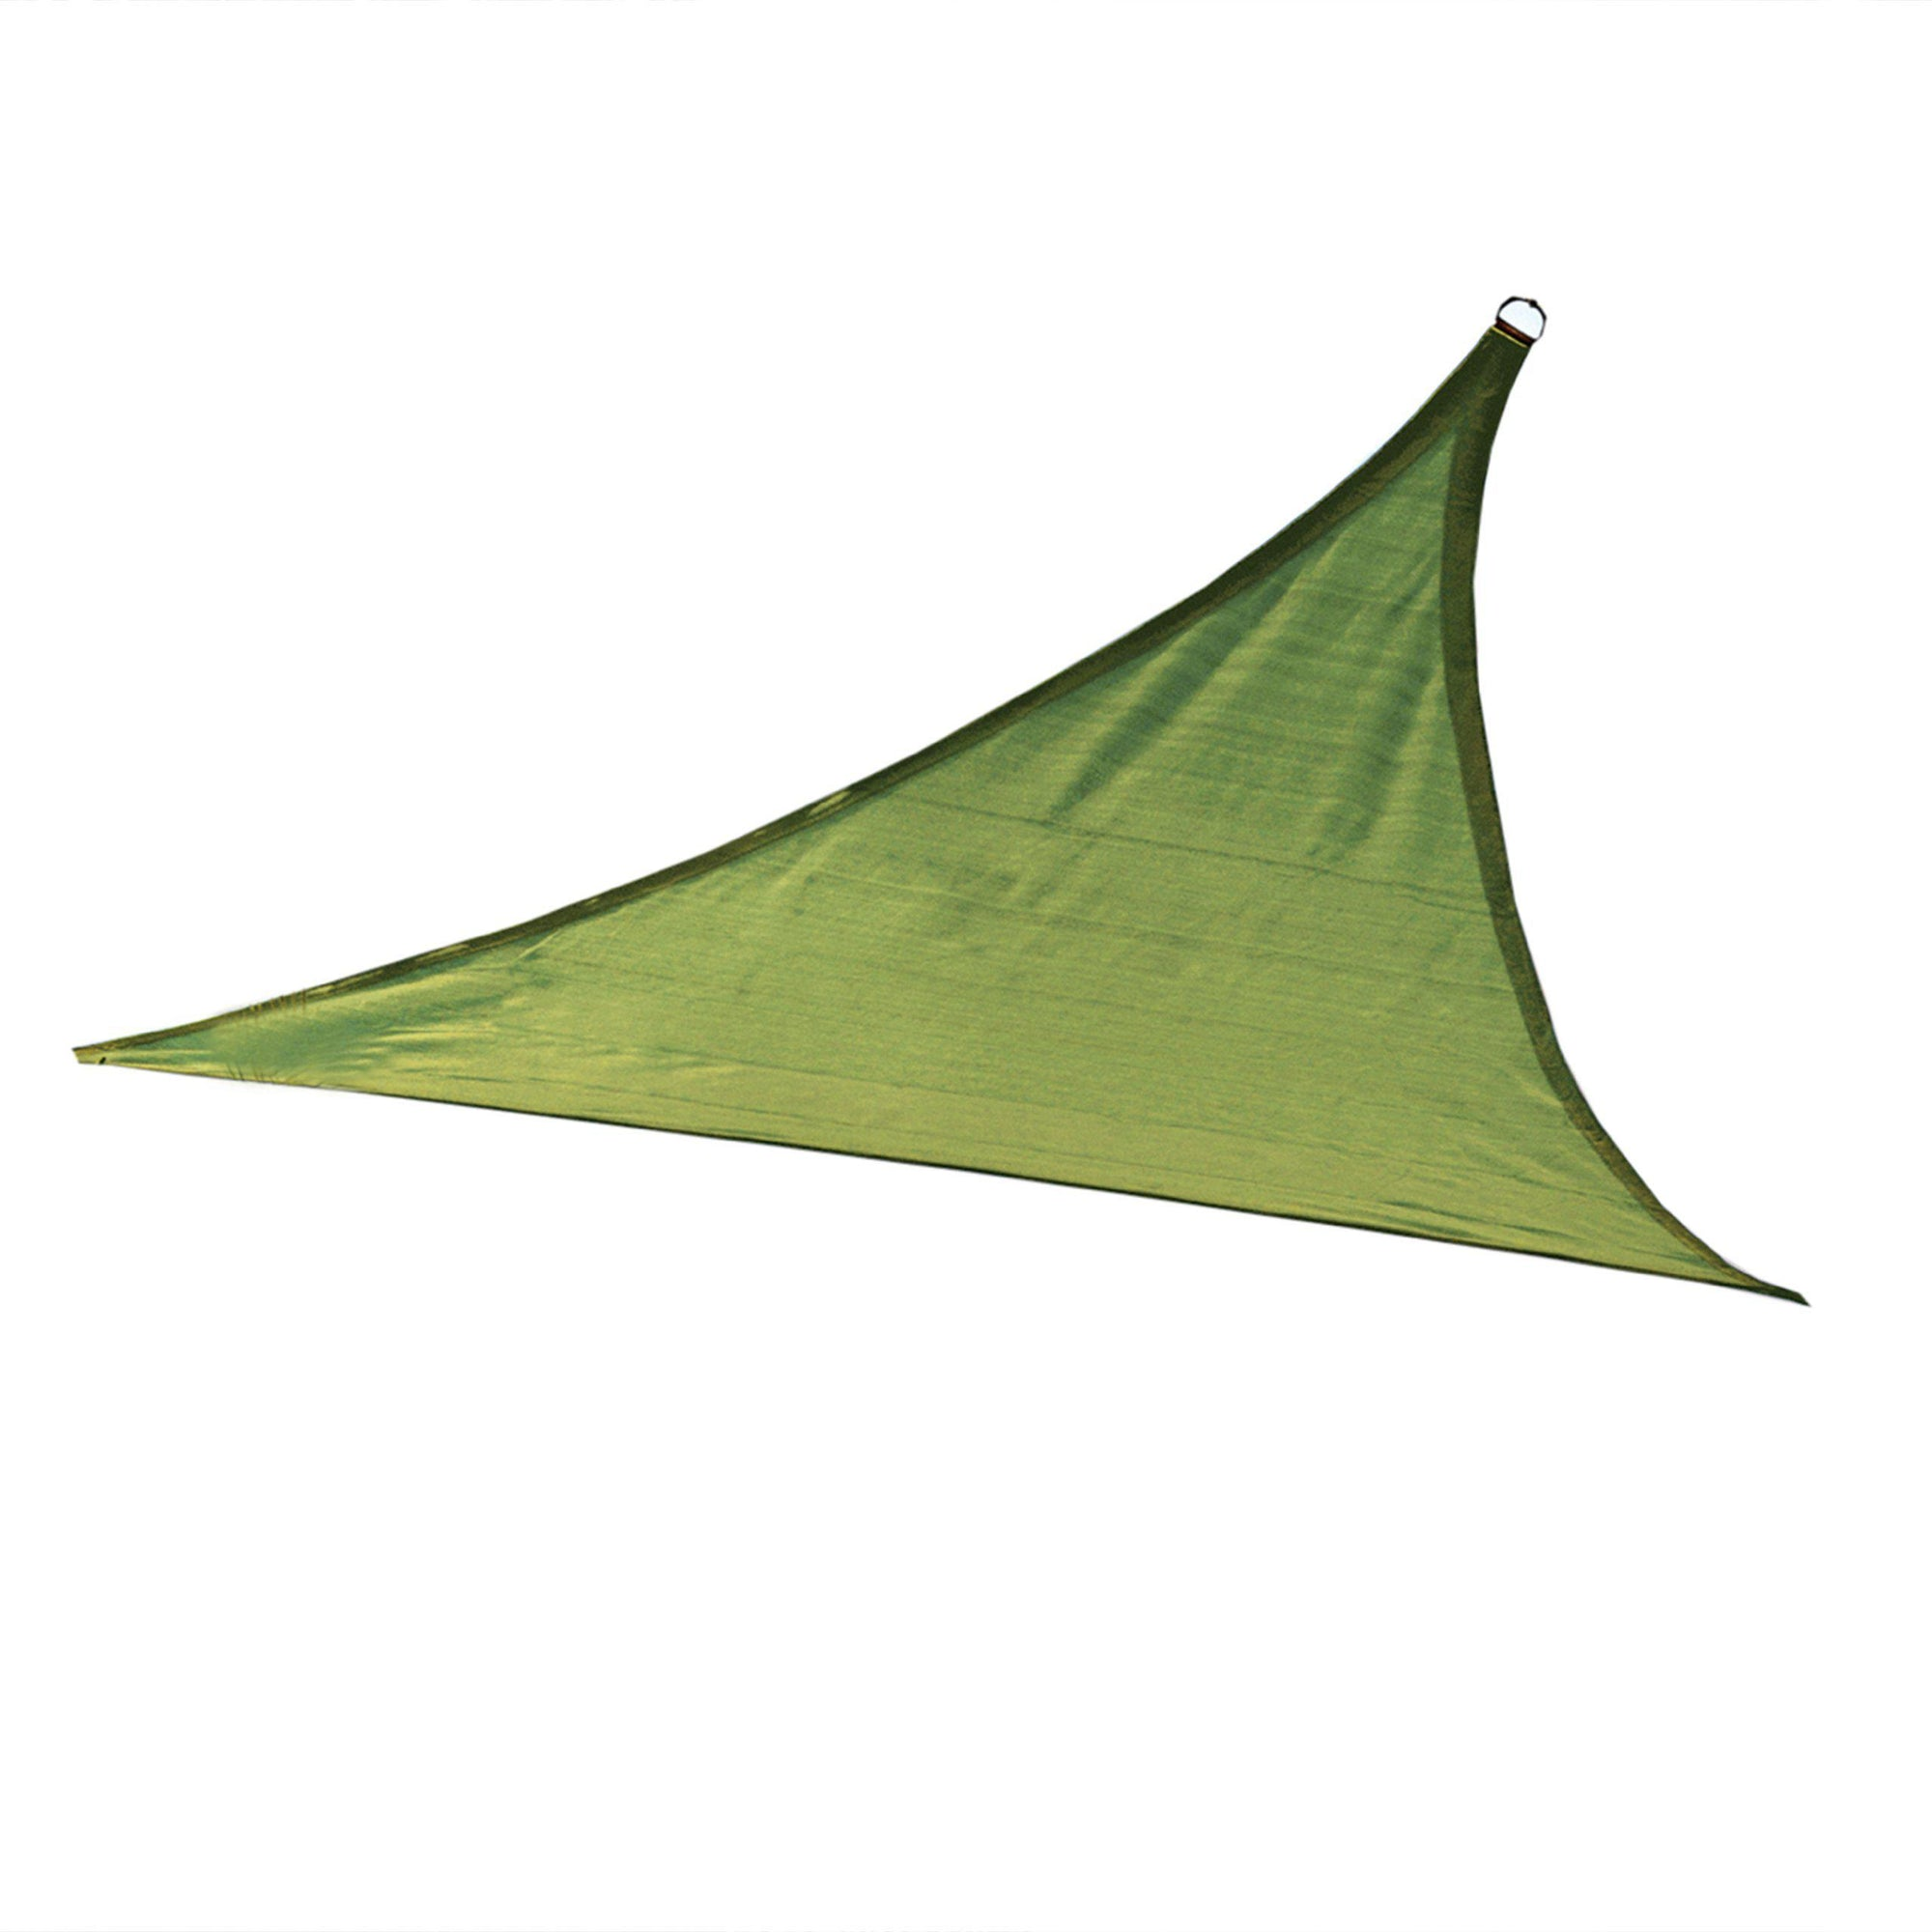 ShelterLogic Triangle Shade Sail, Lime Green, 16 x 16 x 16 ft.